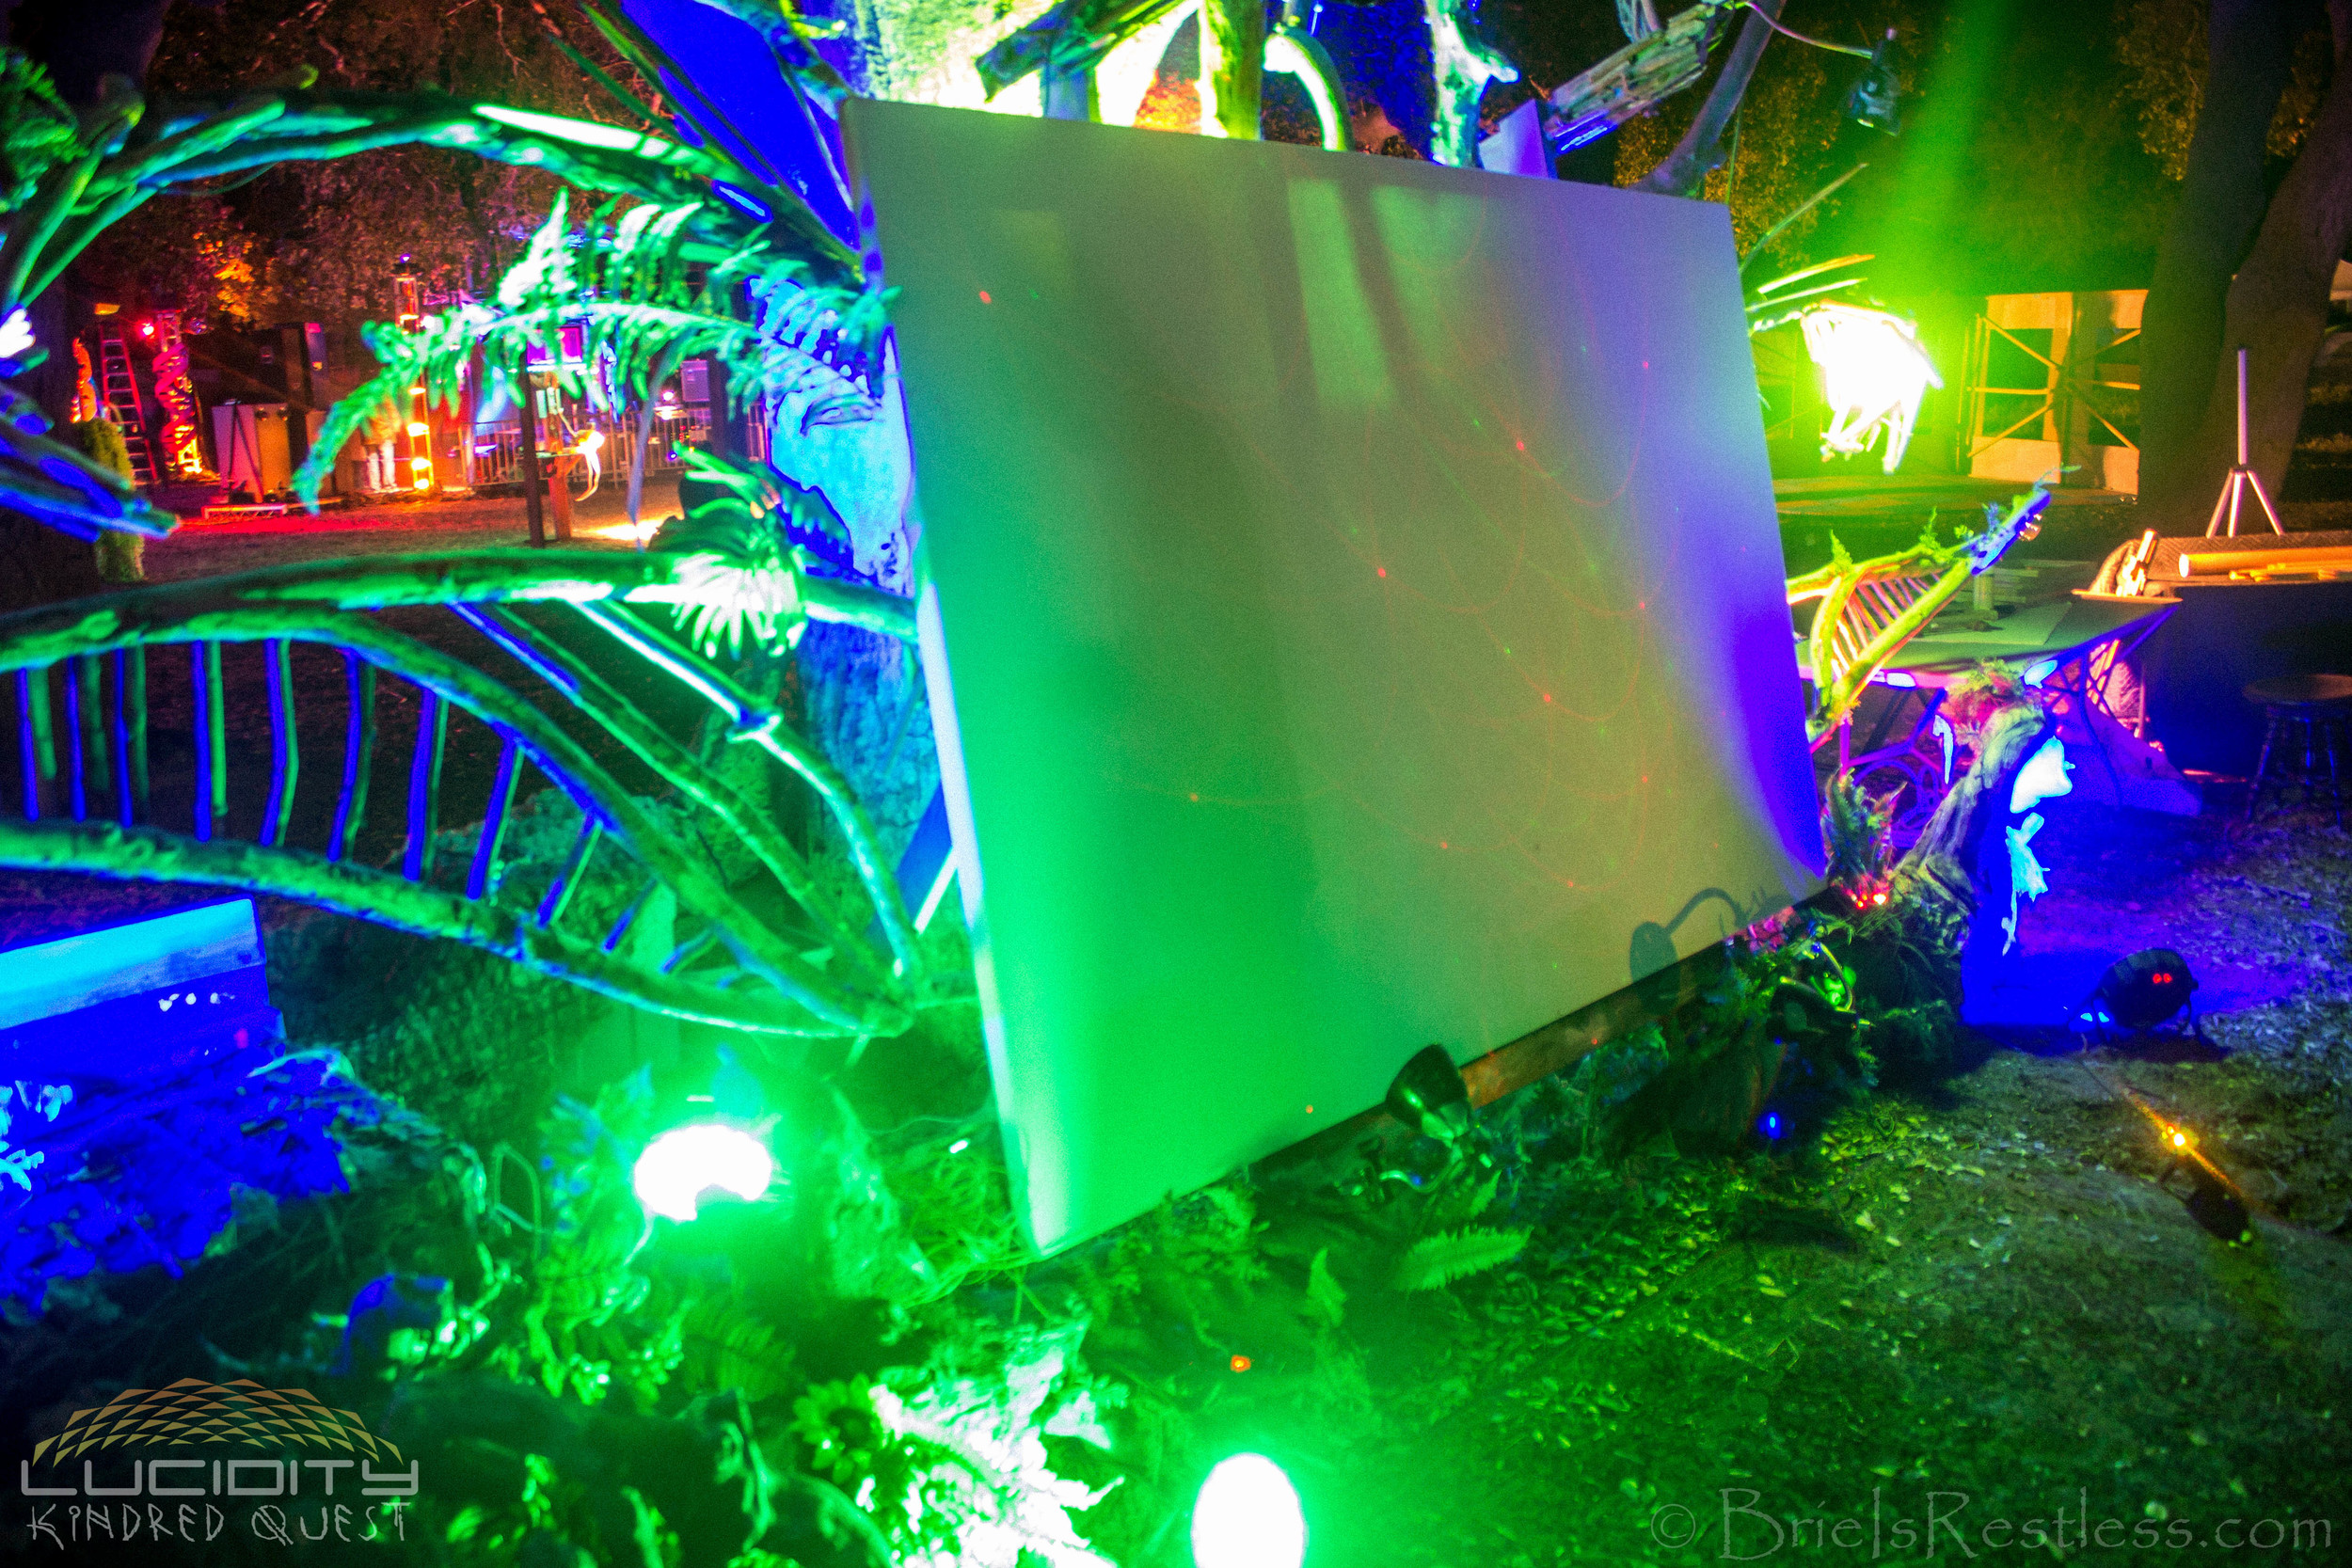 Goddess Grove - Lucid Stage - Main Stage - Art Work - Luciditiy - Kindred Quest - Build - April 2015 (1 of 1) (1 of 1).jpg